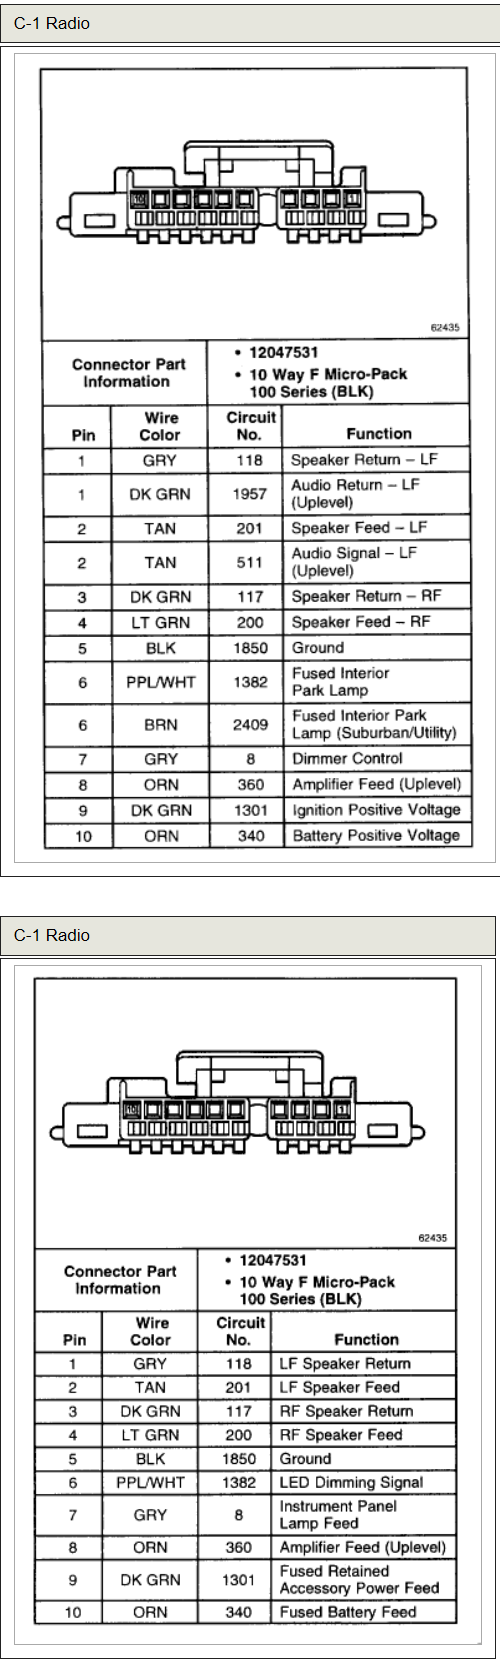 chevrolet car radio stereo audio wiring diagram autoradio connector rh tehnomagazin com chevy car stereo wiring diagram 2000 chevrolet silverado car stereo radio wiring diagram